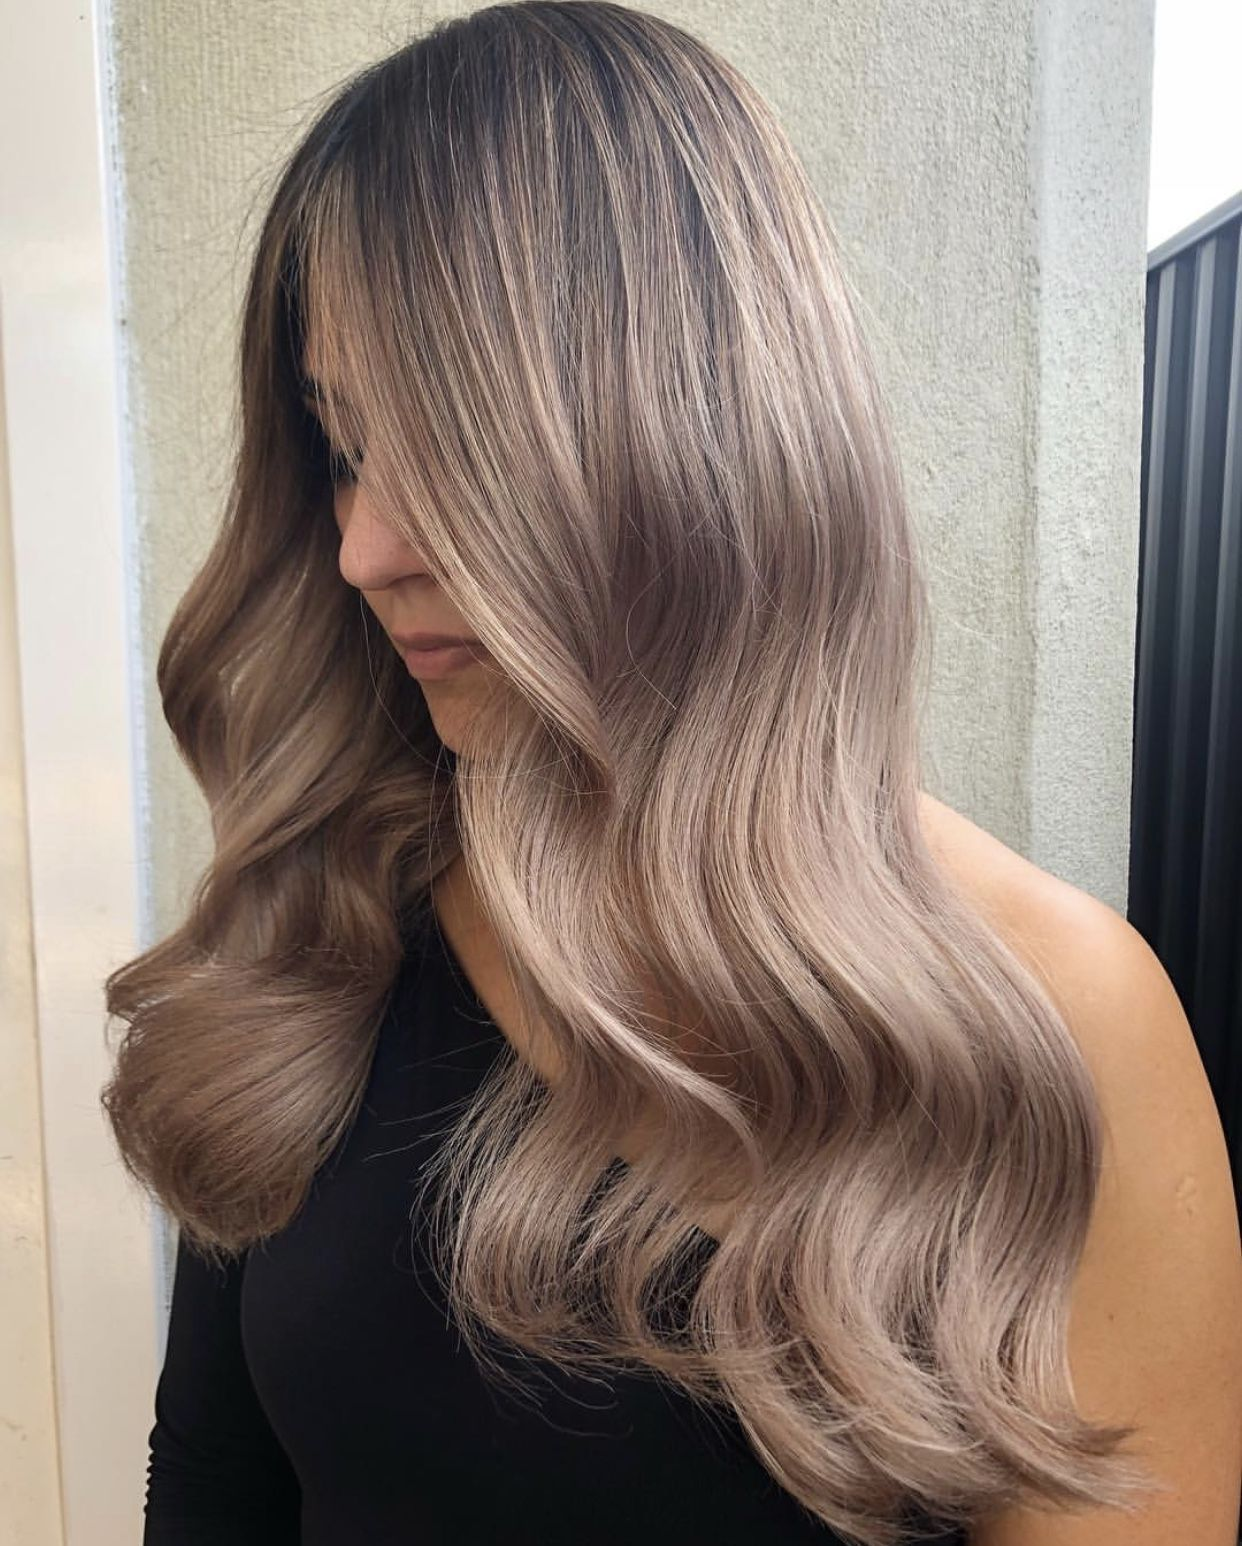 Pin by Destinee May on Hair And Makeup | Ash brown hair ...